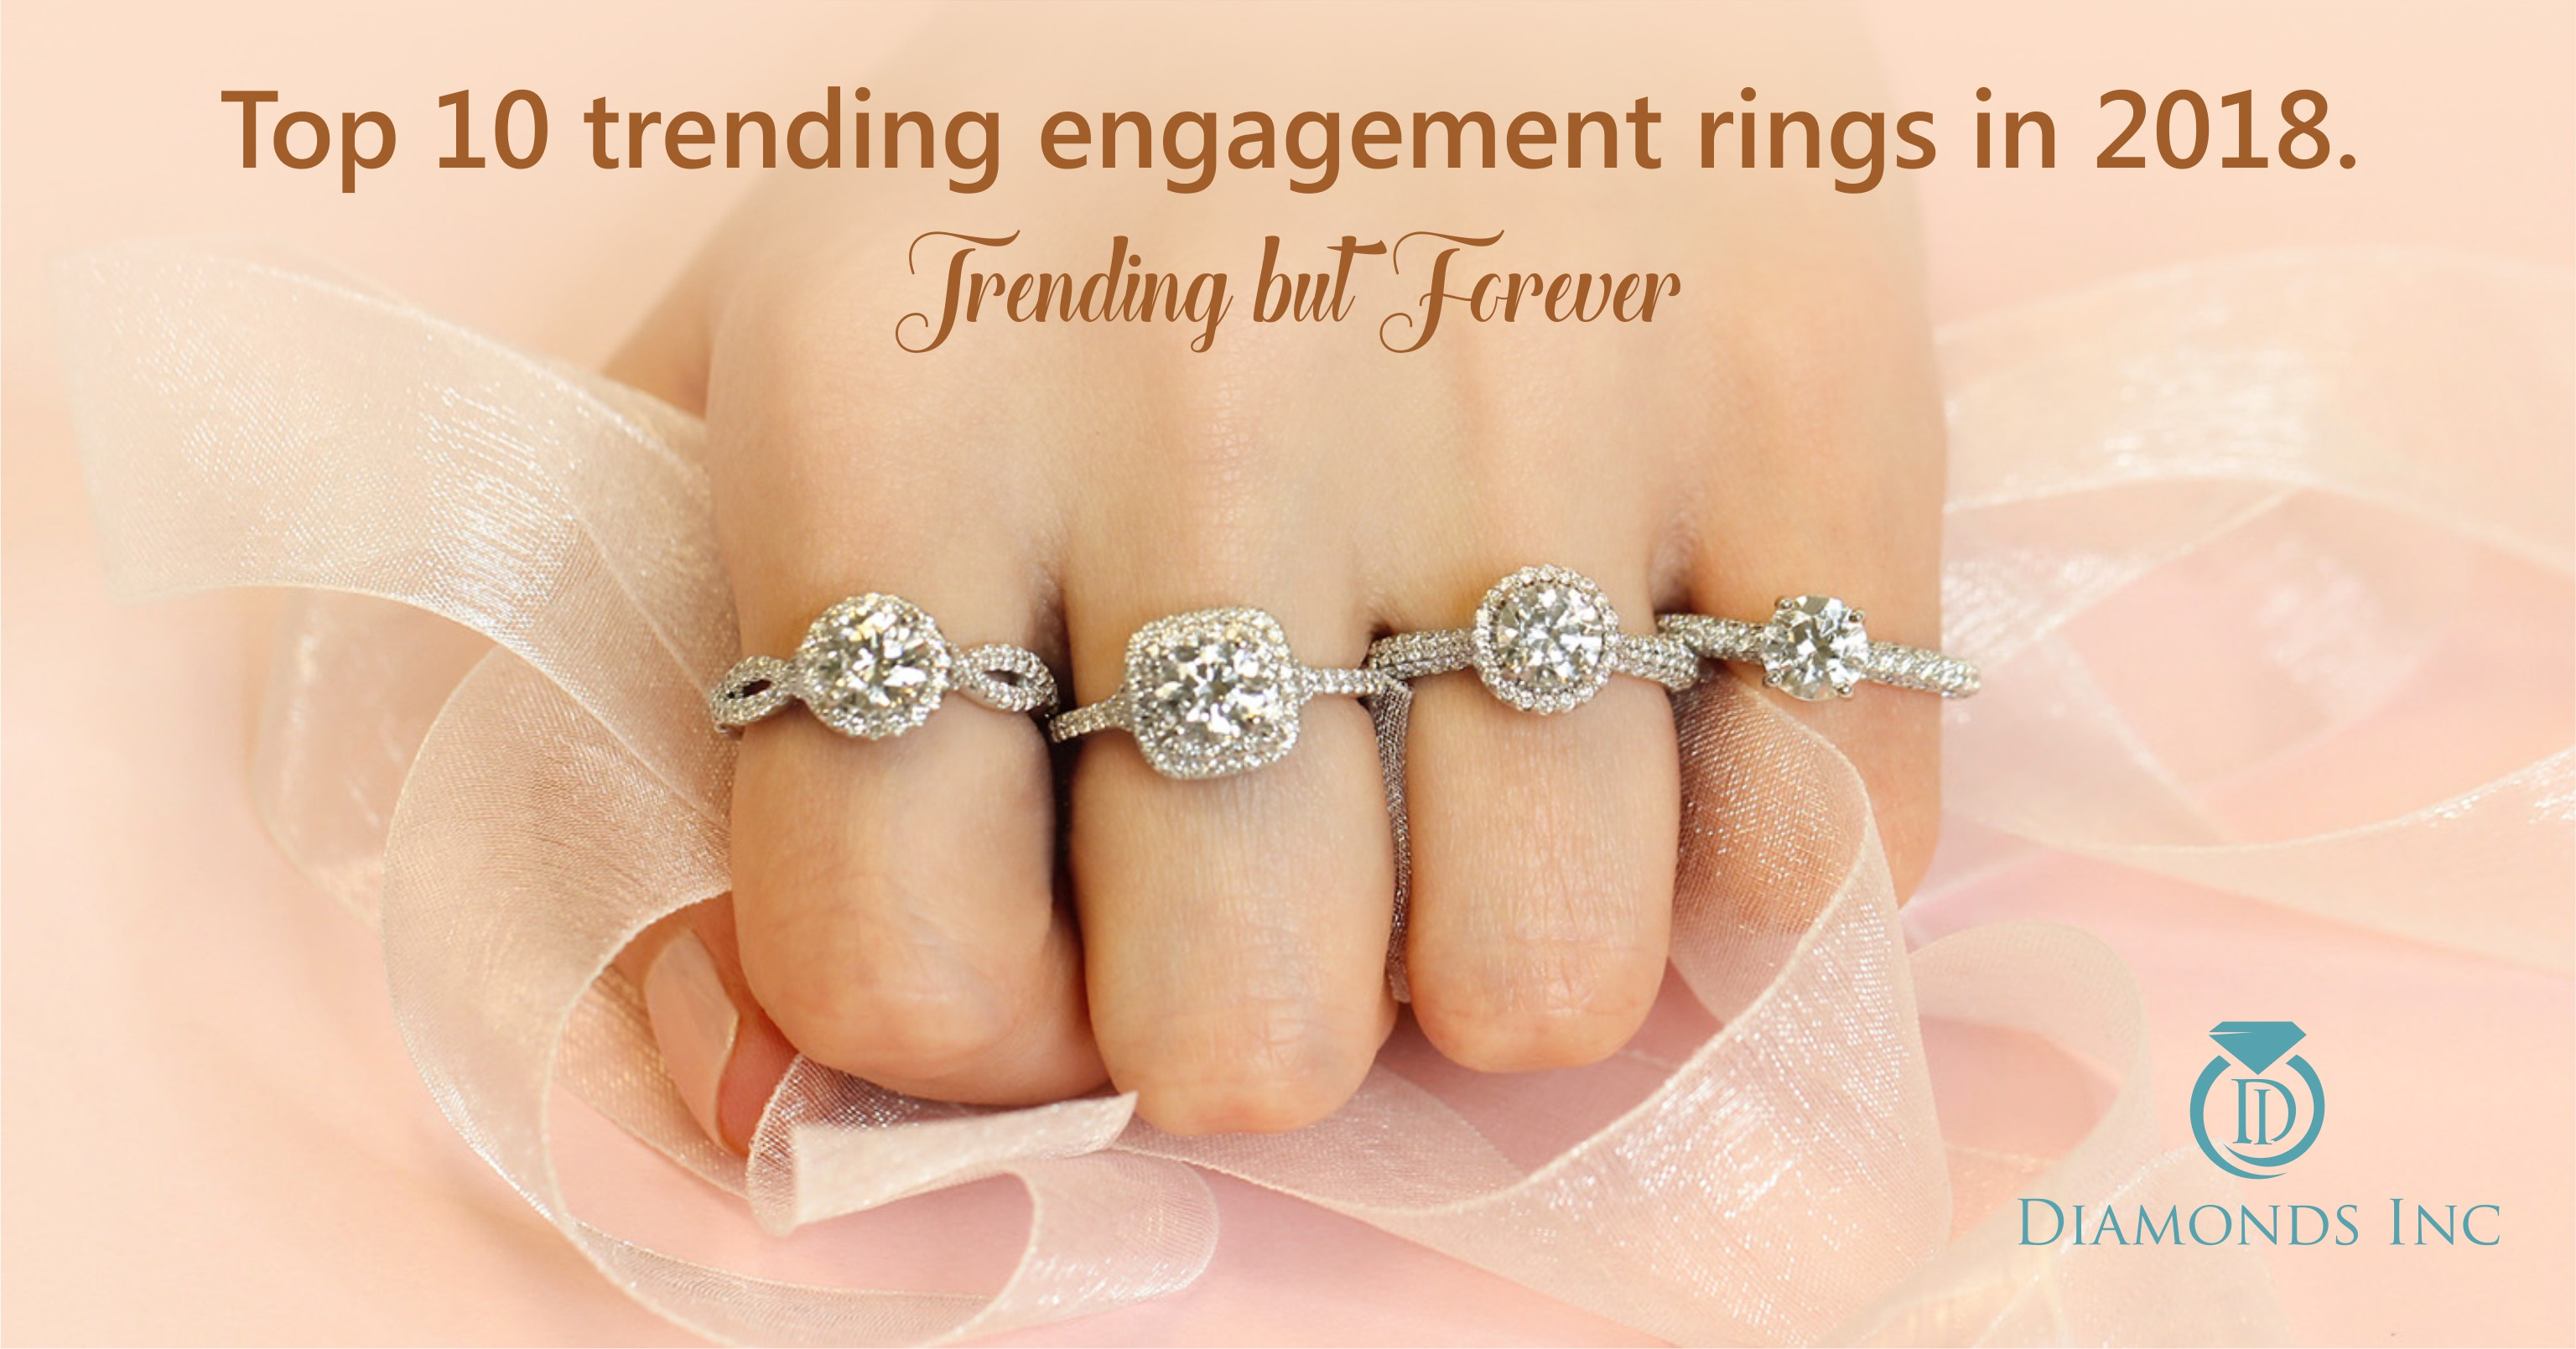 What are the latest 2018 trends in engagement rings Diamonds Inc